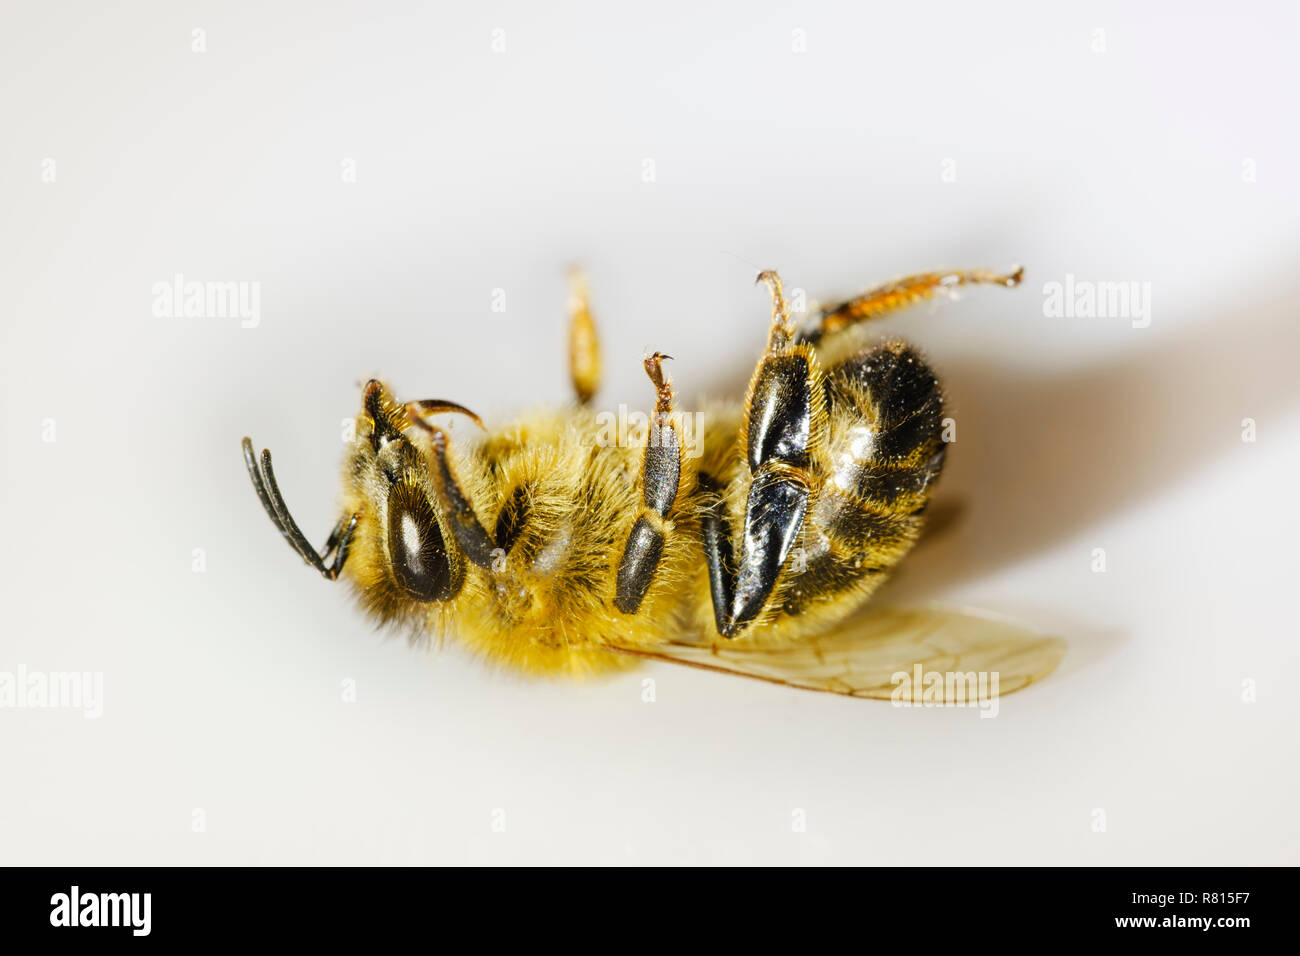 Dead honey bee (Apis mellifera), Colony collapse disorder, insect death, Germany - Stock Image